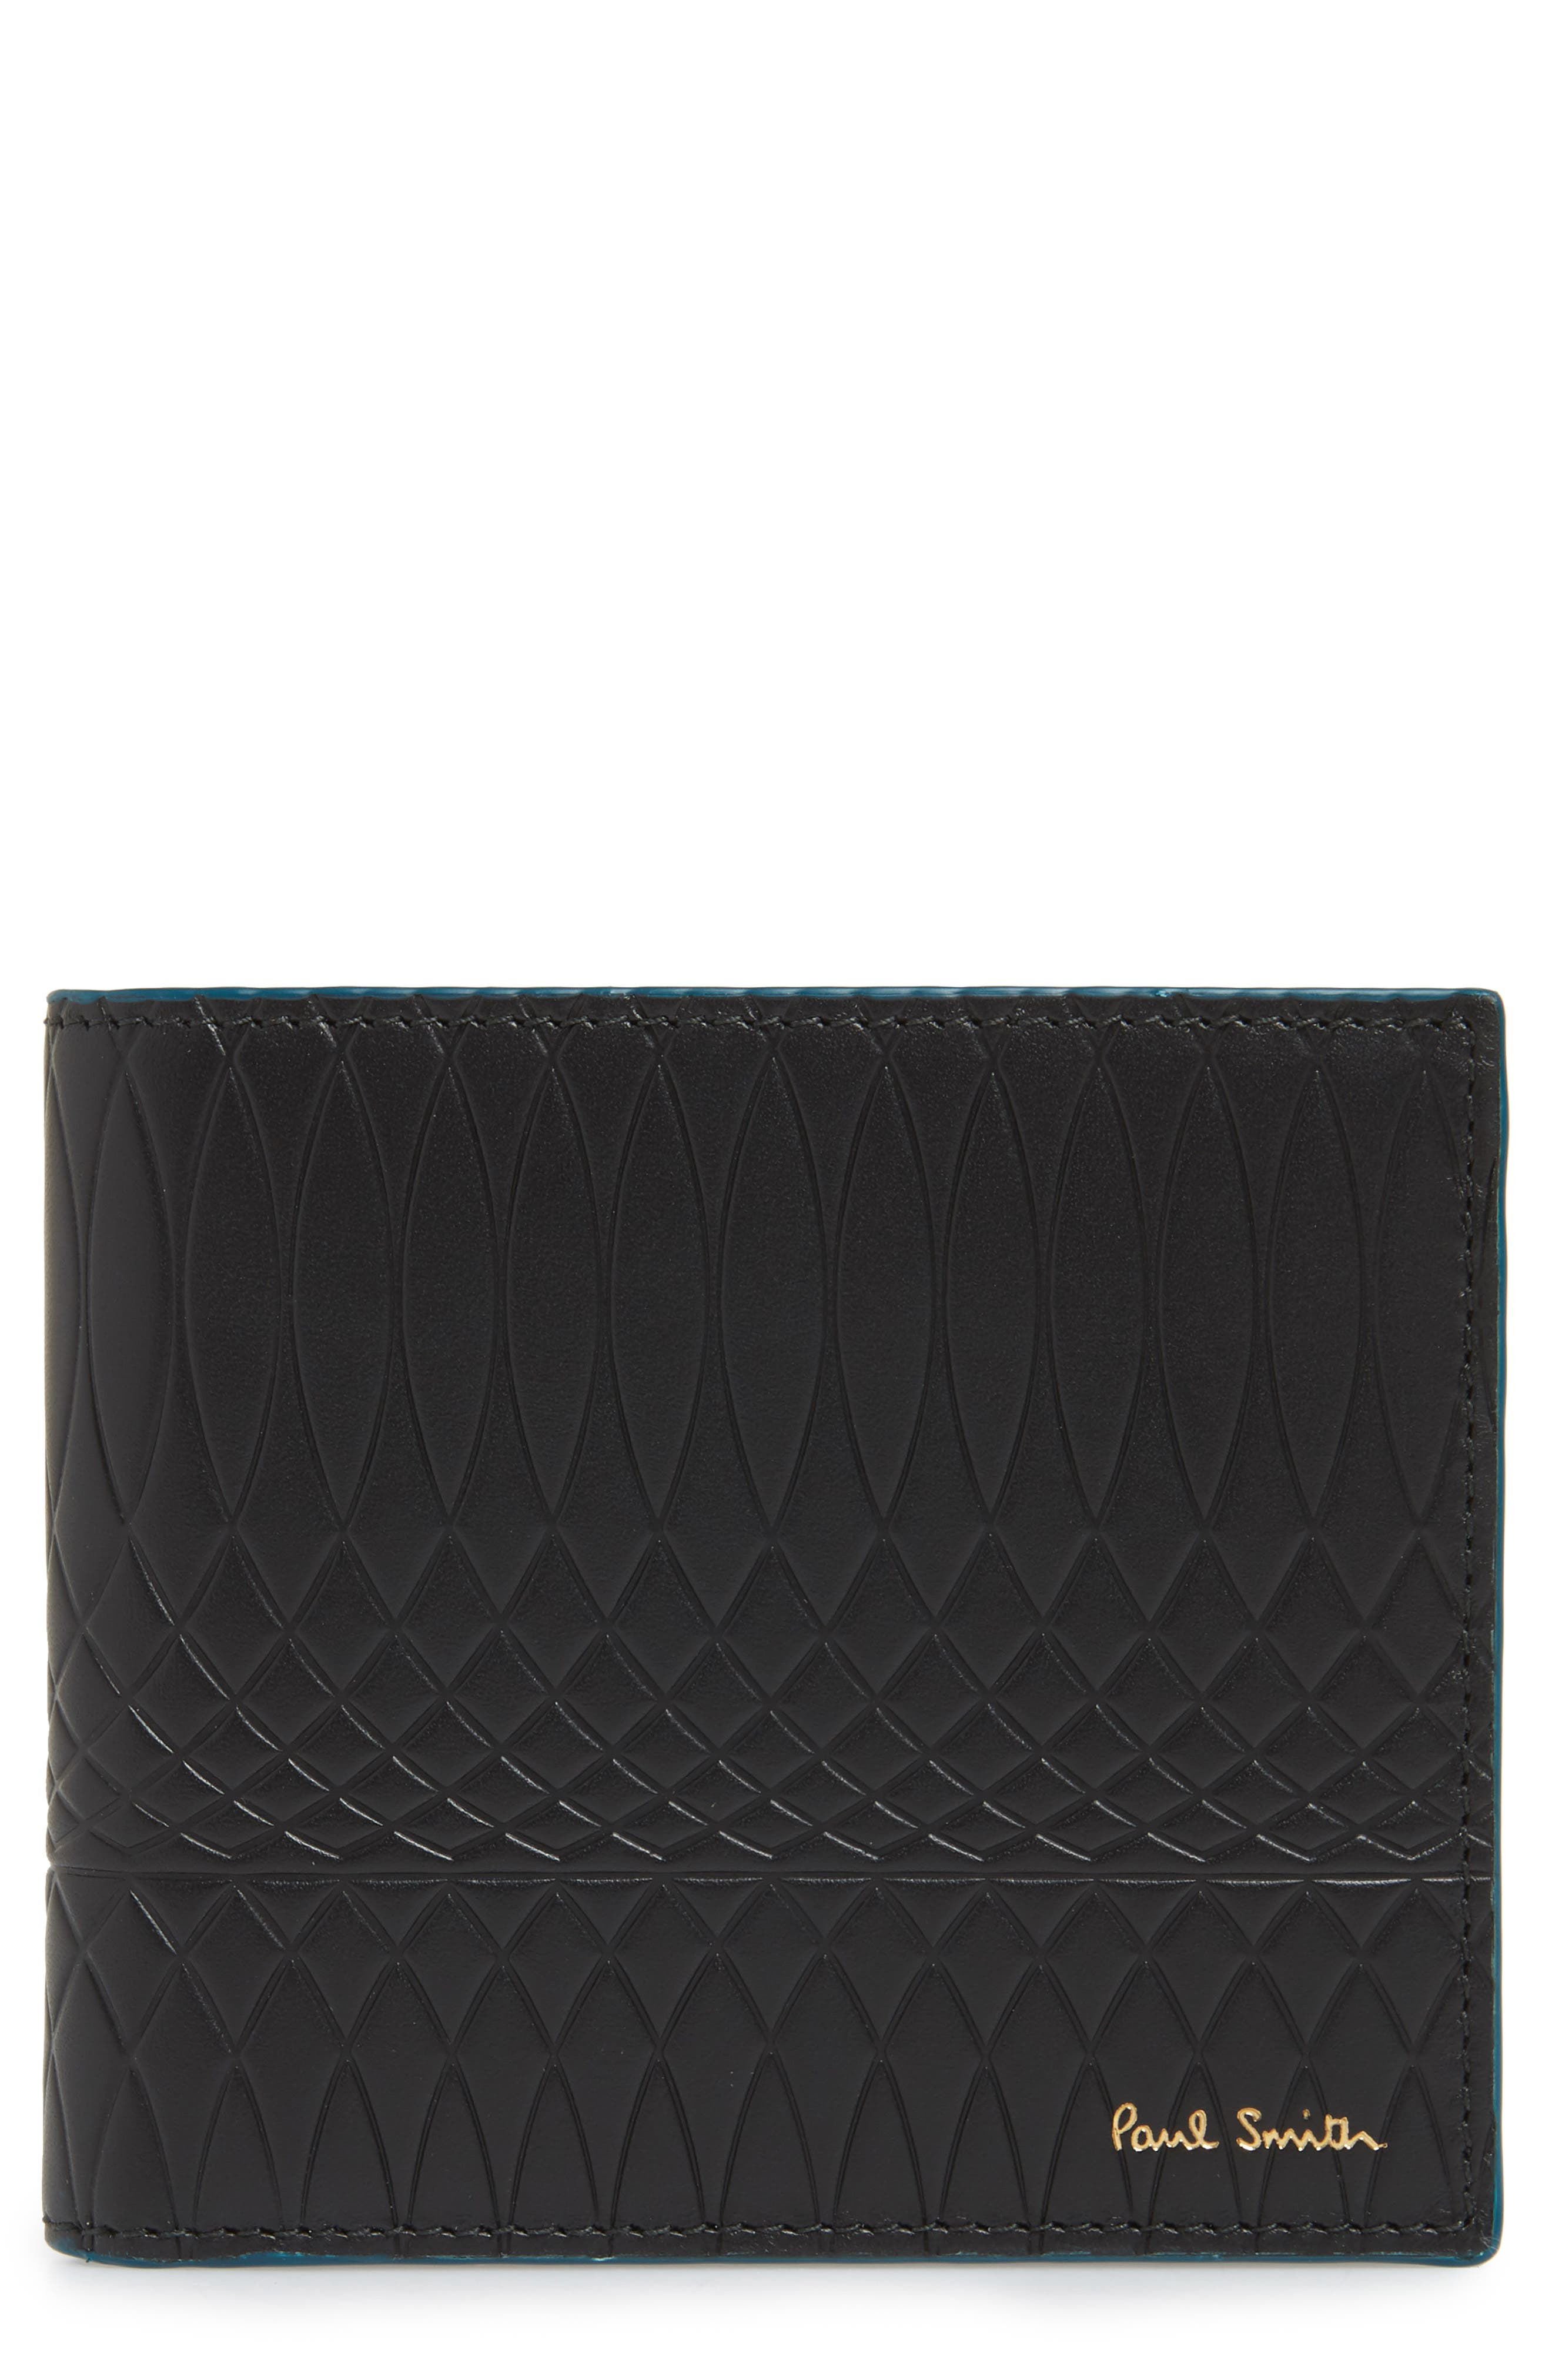 Embossed Leather Billfold Wallet,                             Main thumbnail 1, color,                             BLACK